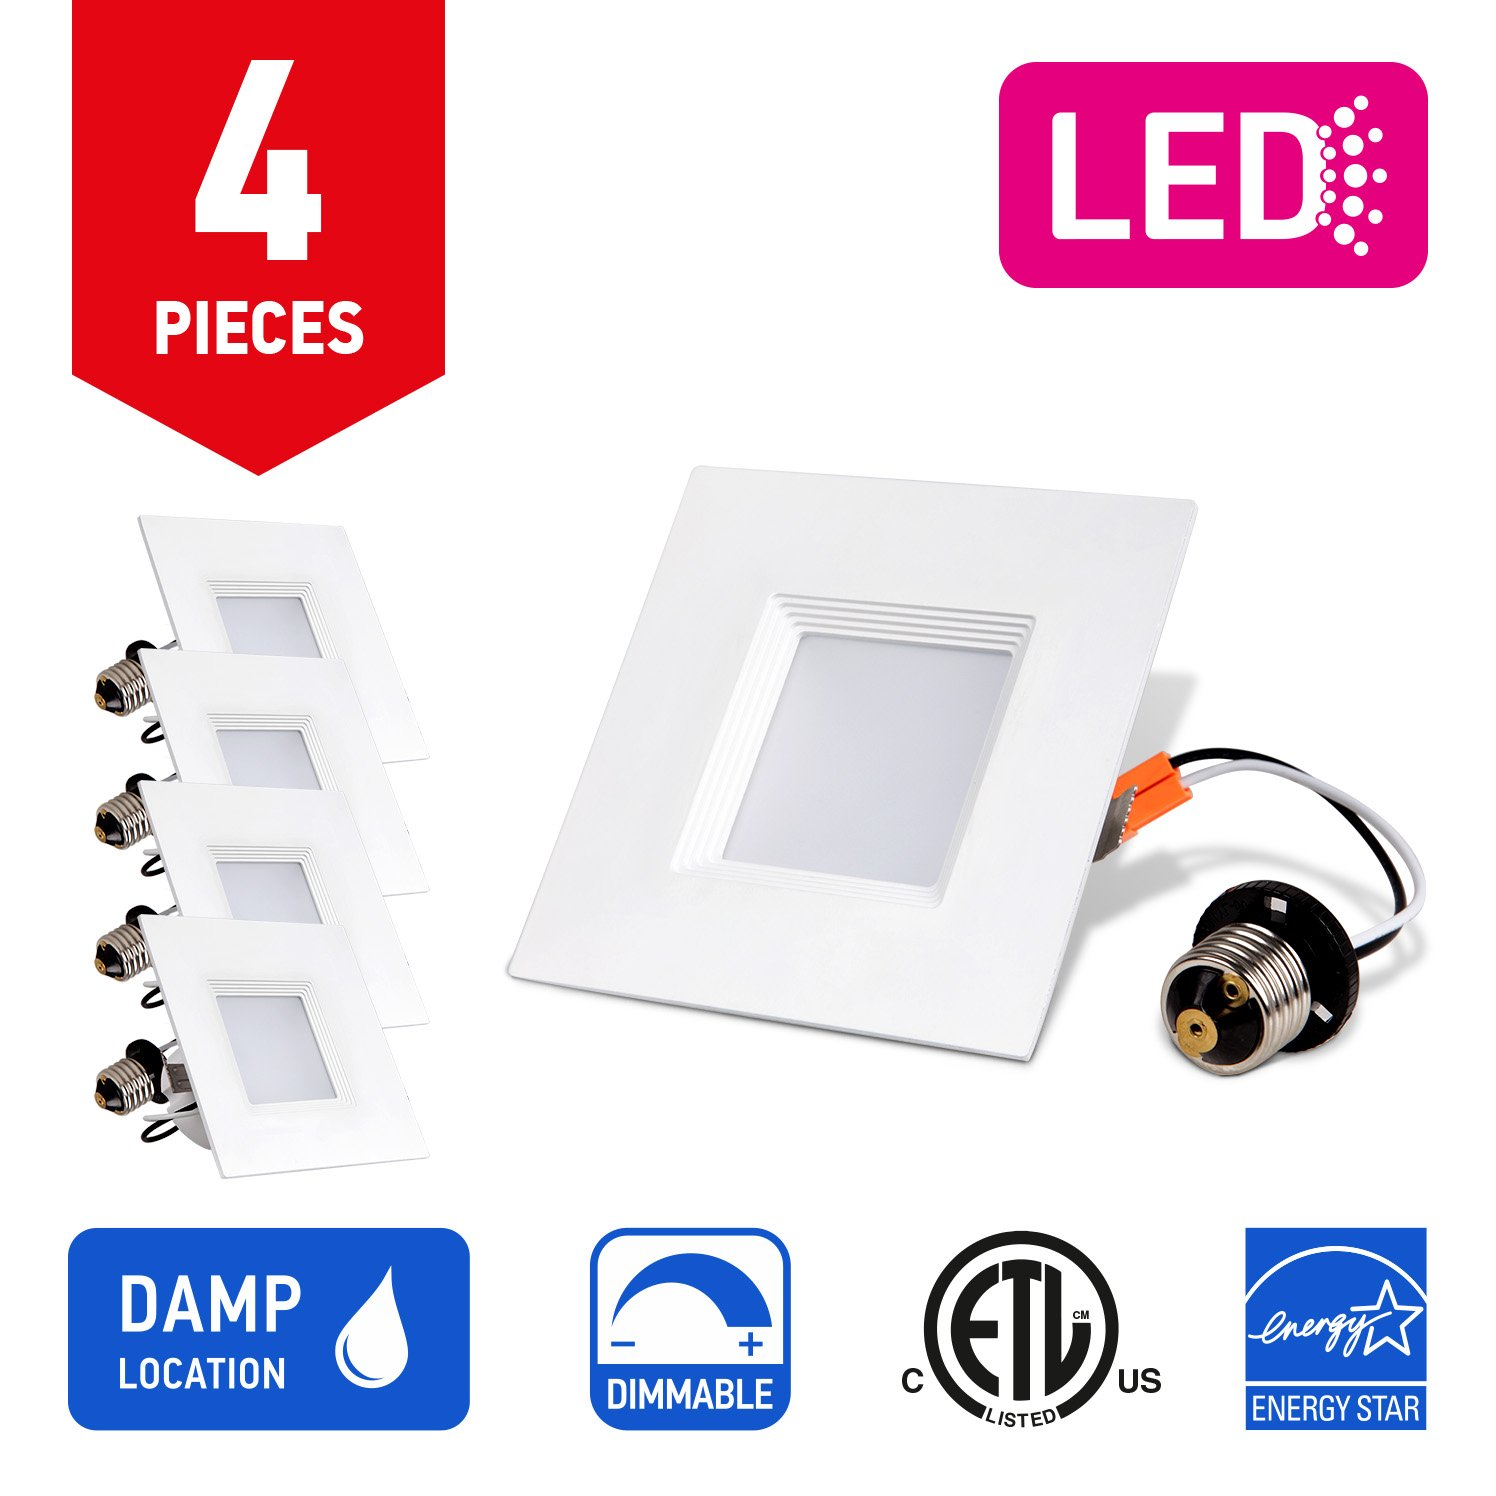 OSTWIN Recessed Lighting, Led 4-inch Can Pot Lights for Ceiling, Square Downlight Retrofit Kit Fixture, Baffle Trim, 10W (50 Watt), 5000K (Daylight) Dimmable, (4 Pack) ETL & Energy Star Listed